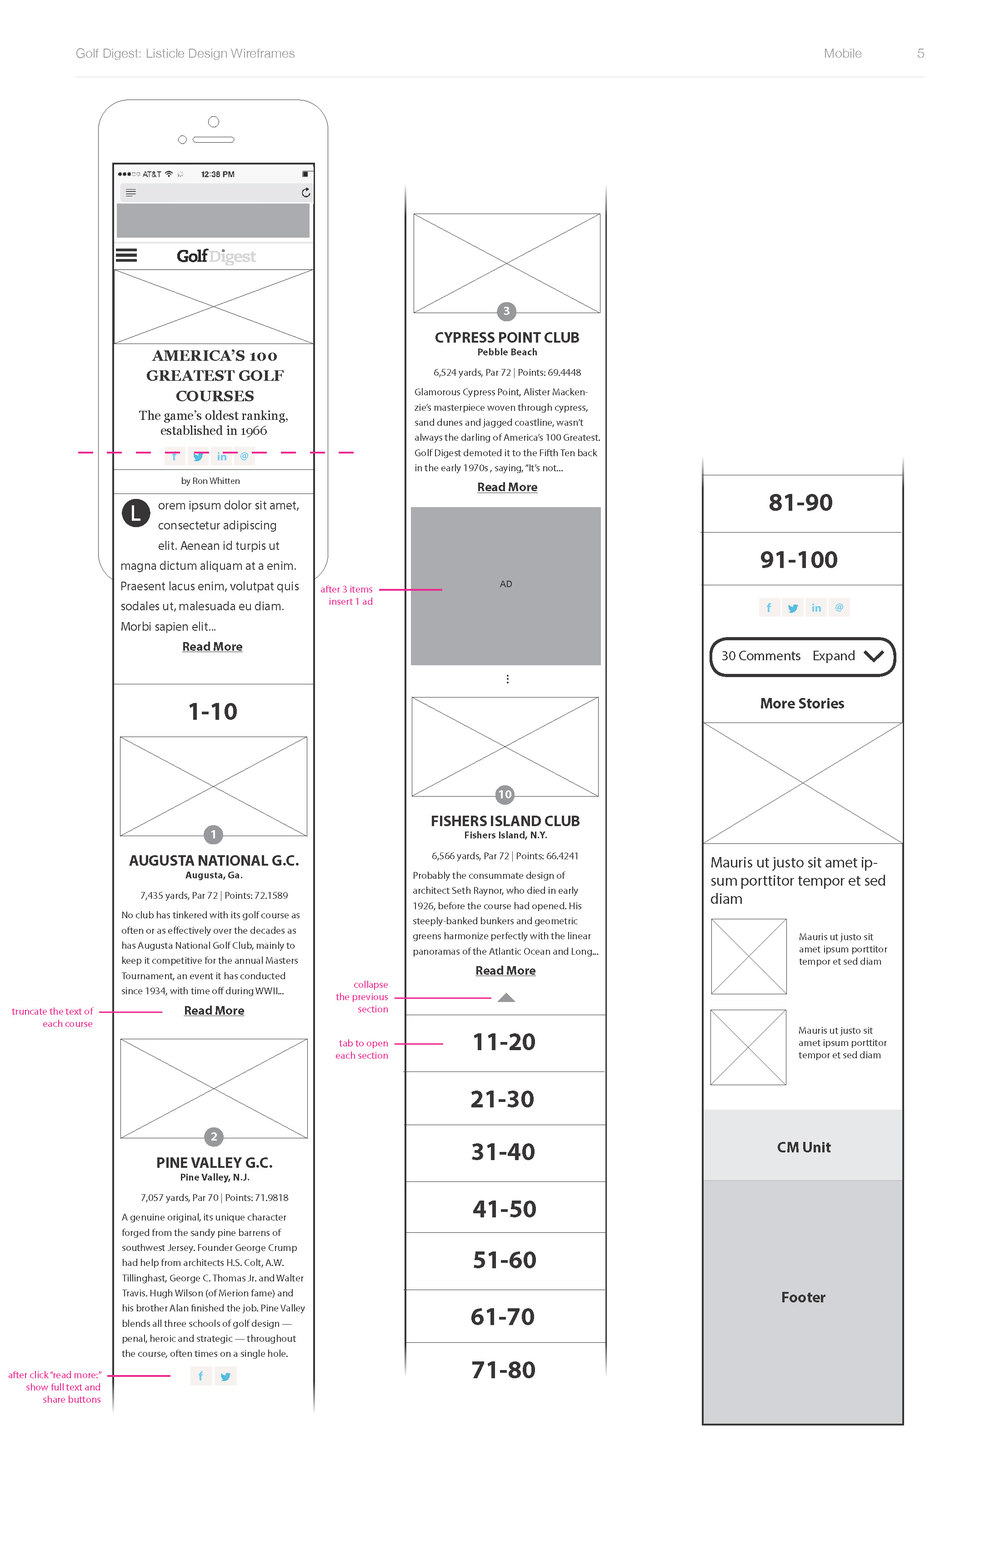 GD_Listicle_Wireframes_v2.5_Page_5.jpg